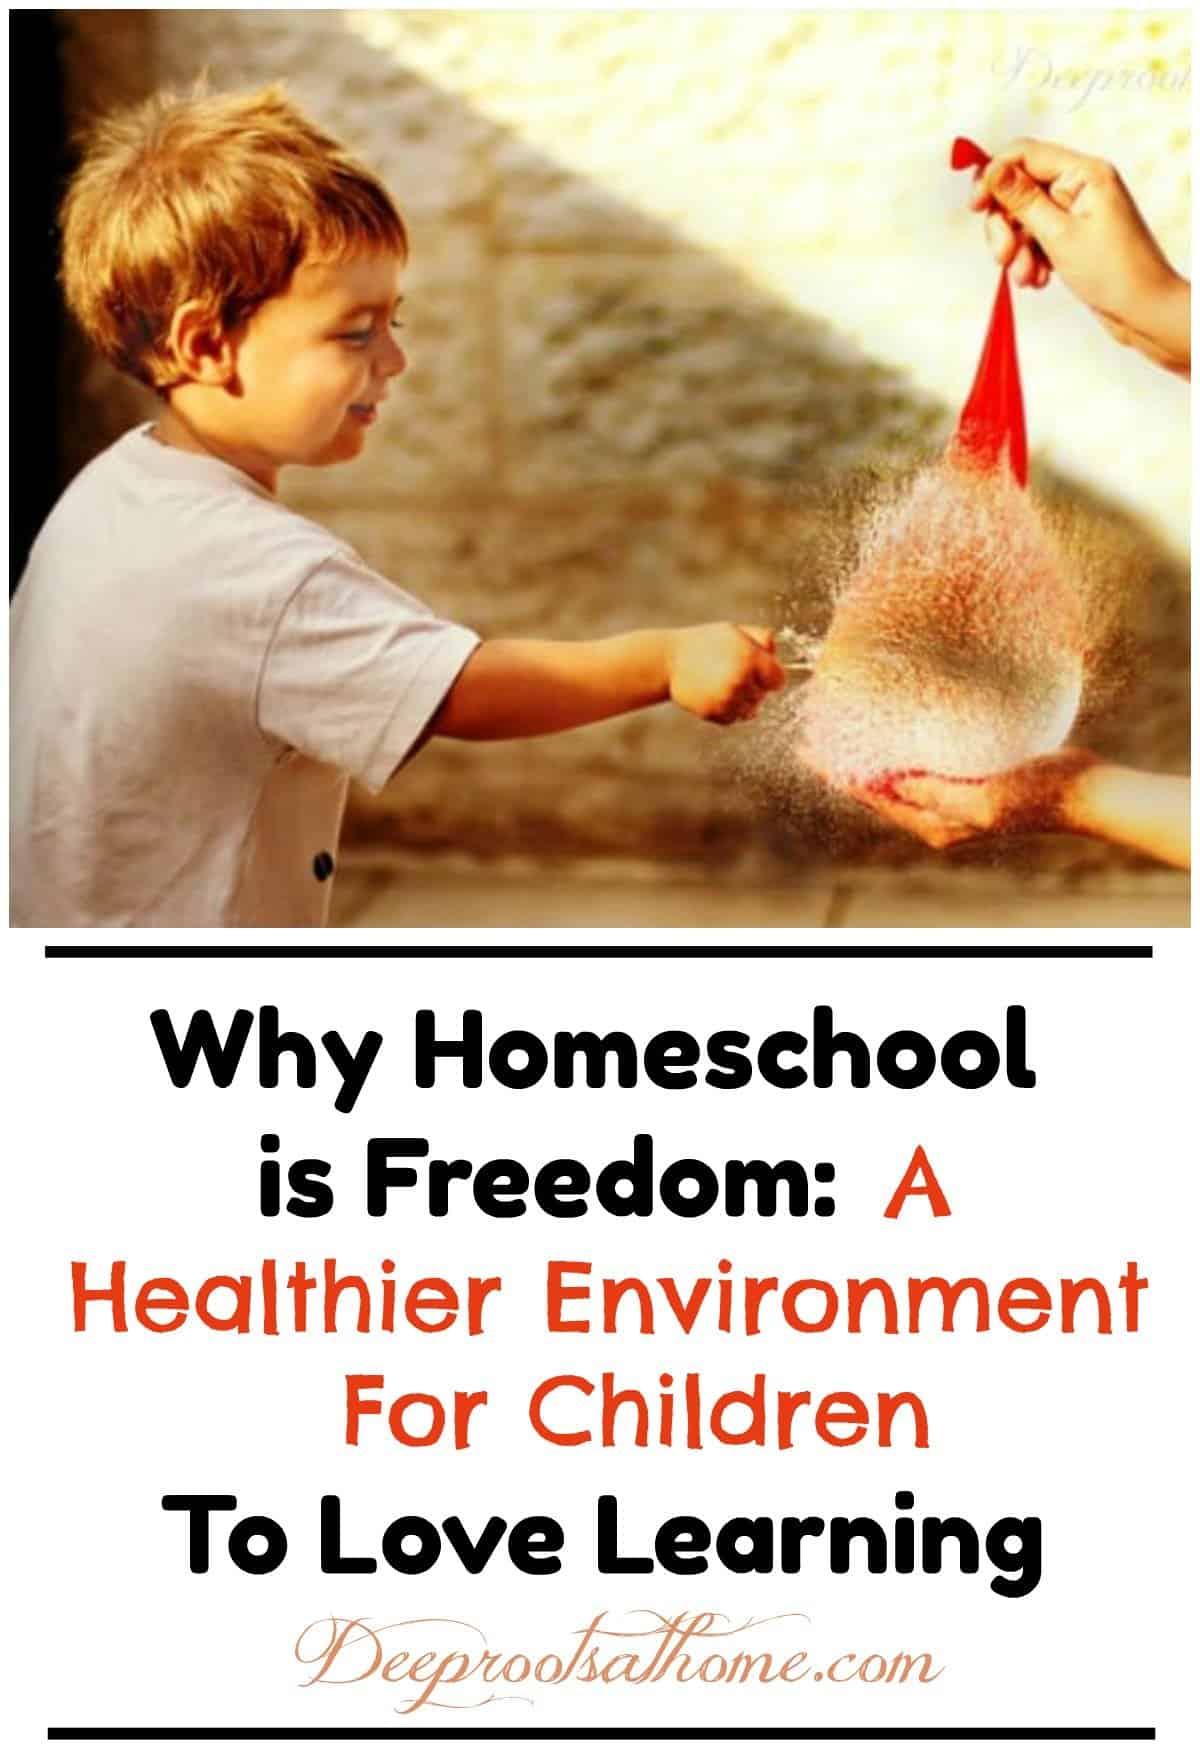 Why Homeschool Is Freedom...Freedom To Learn and To Love Learning. A homeschool student popping a water balloon in an experiment.